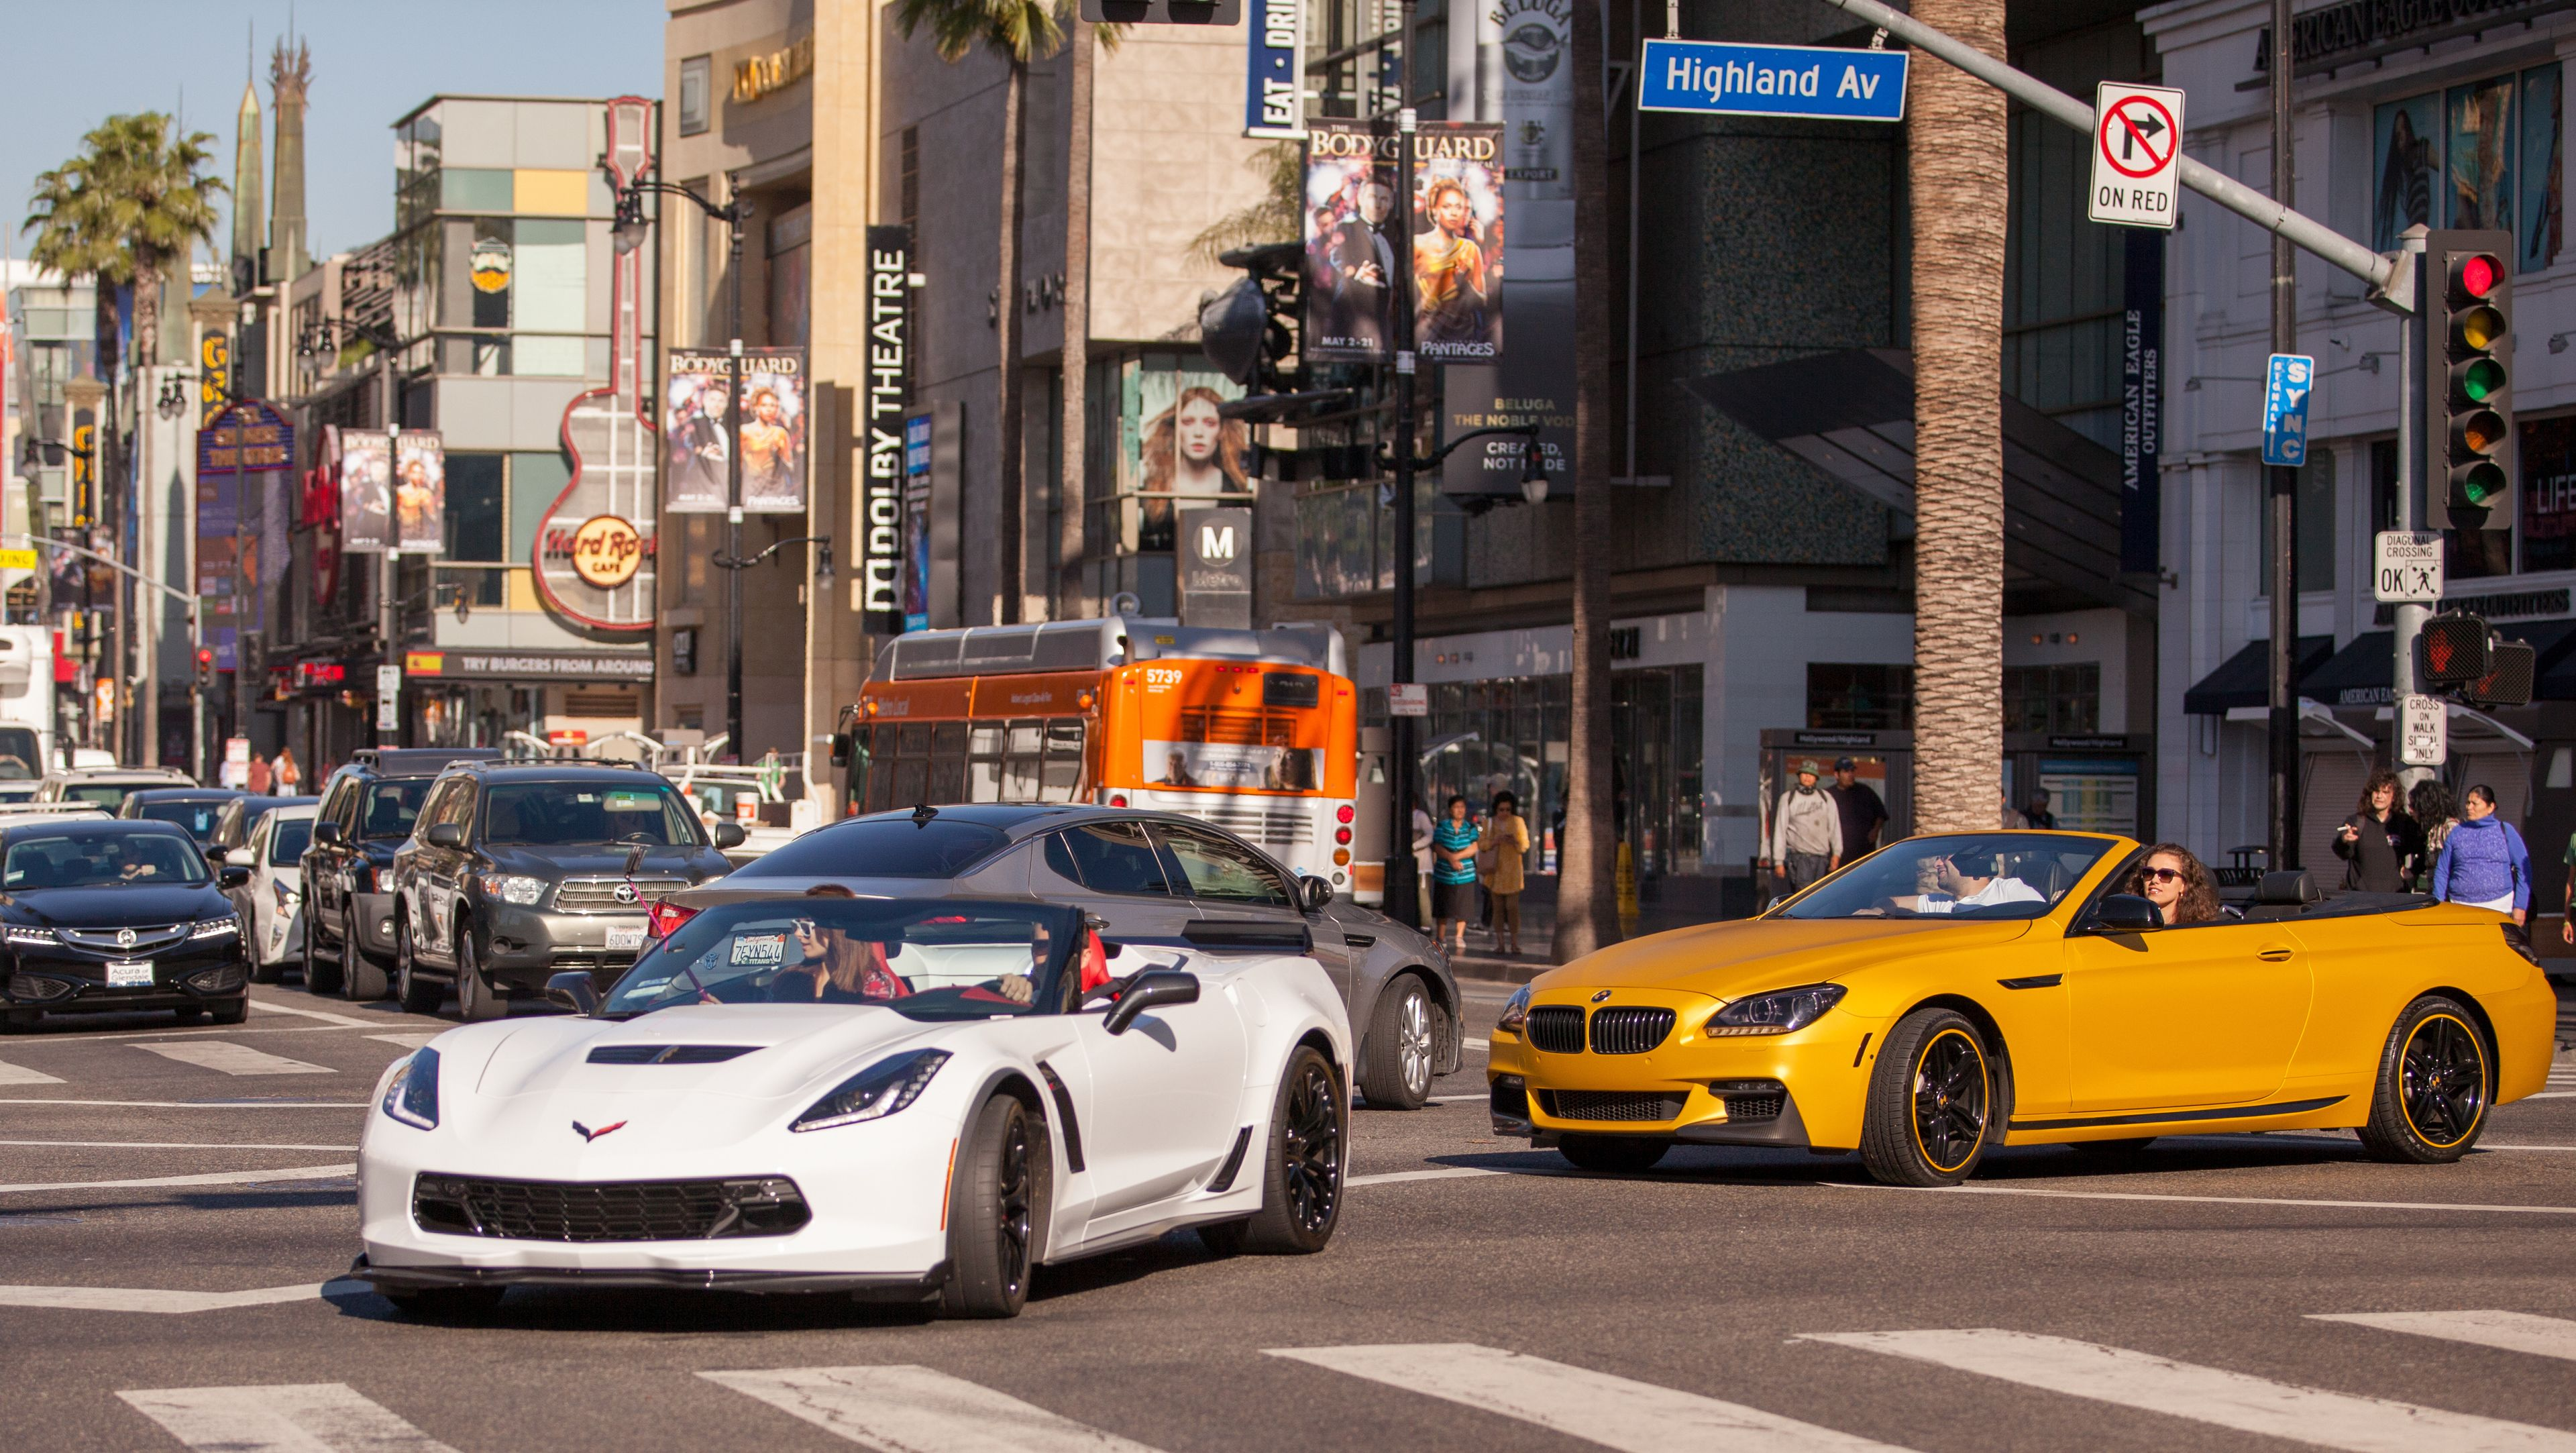 LA Drive Tours - Hollywood Private Driving Tours Los Angeles Expedia.jpg